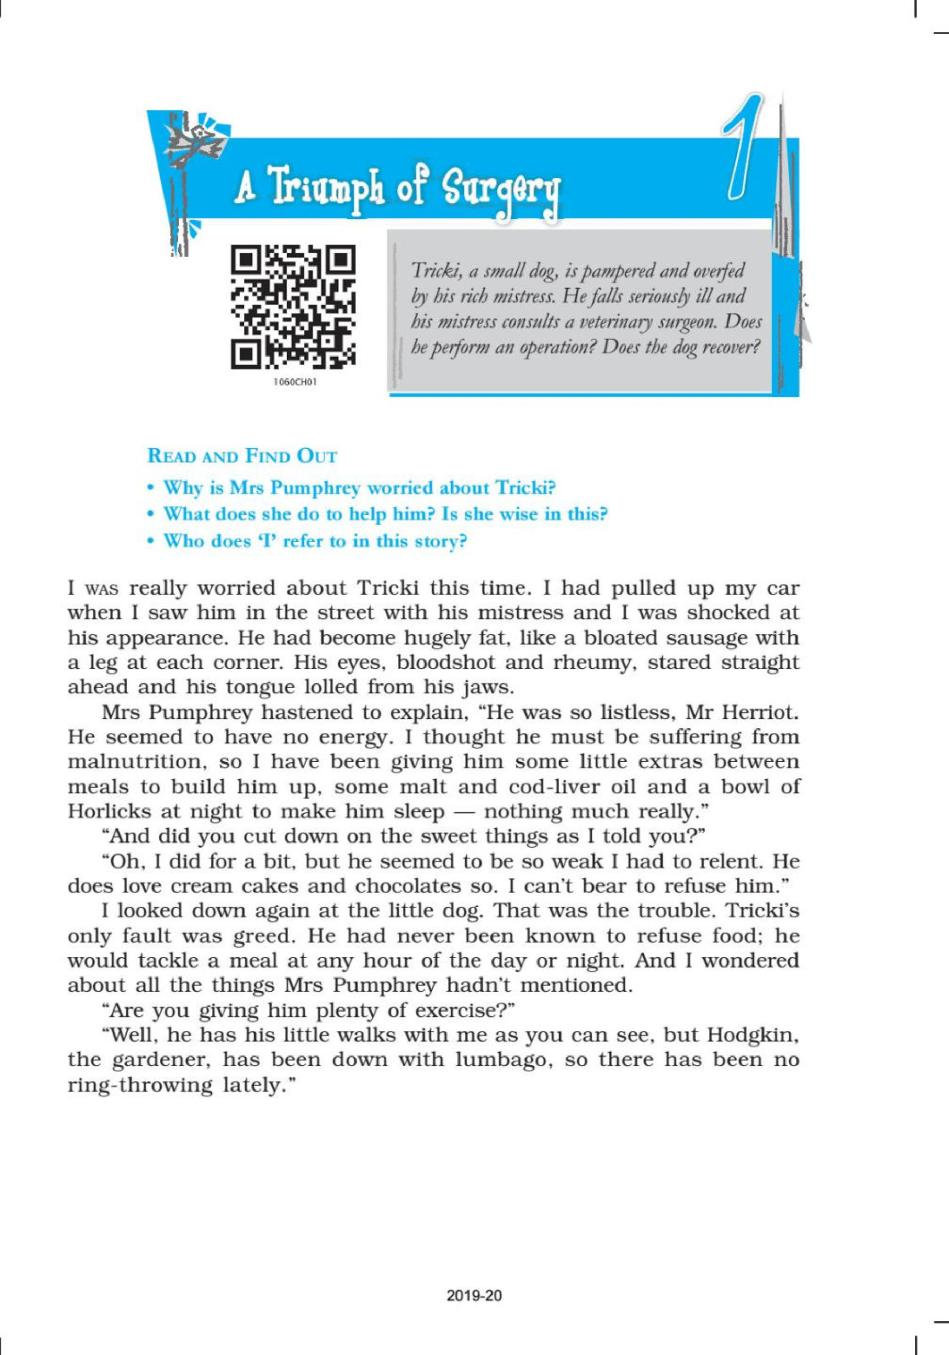 NCERT Book Class 10 English (Foot Prints Without feet) Chapter 1 A Triumph of Surgery - Page 1